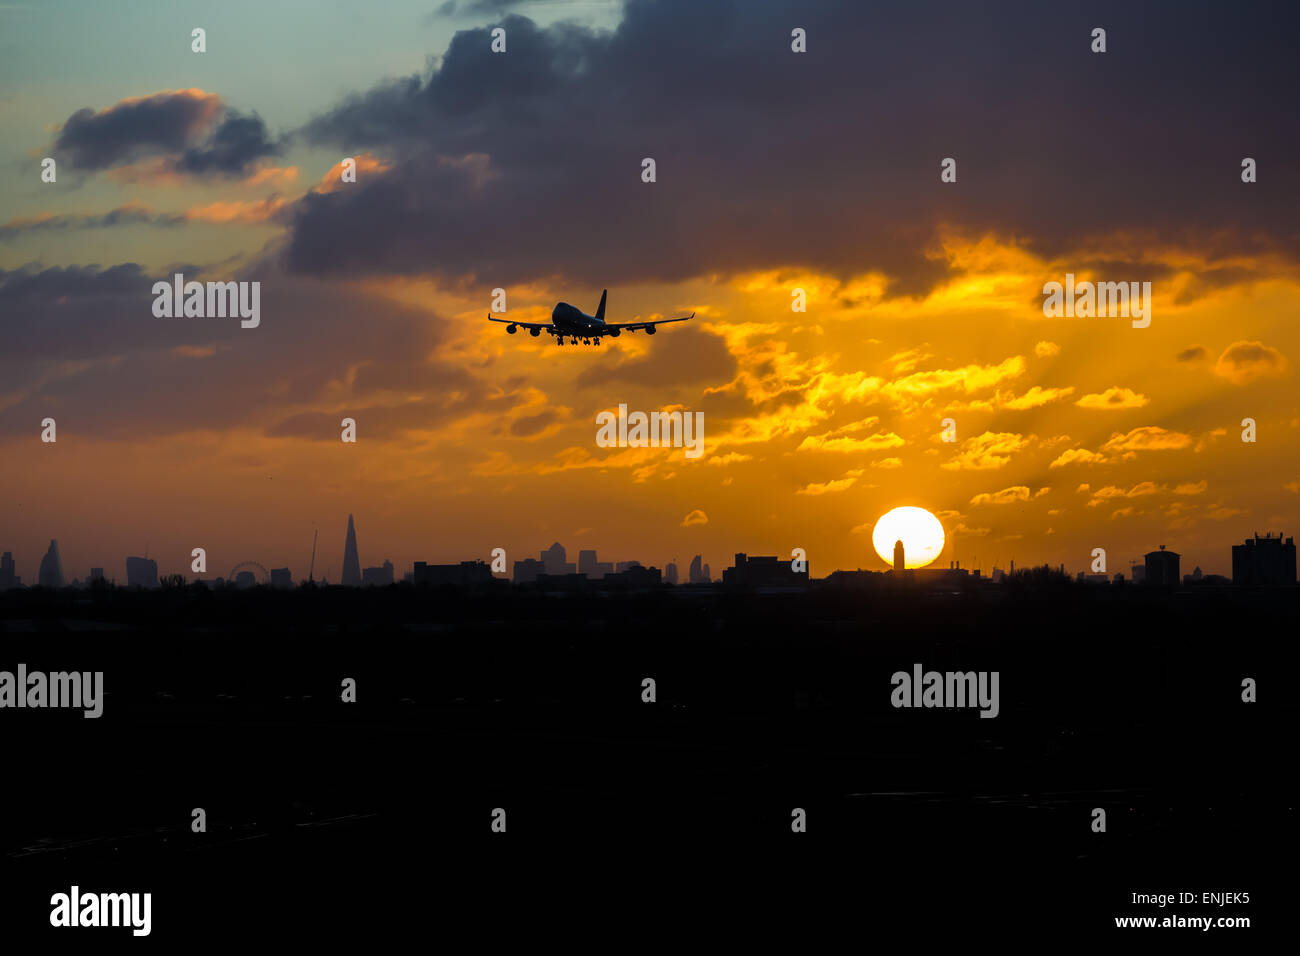 A plane comes into land at Heathrow Airport, London, United Kingdom as the sun rises above London City skyline - Stock Image